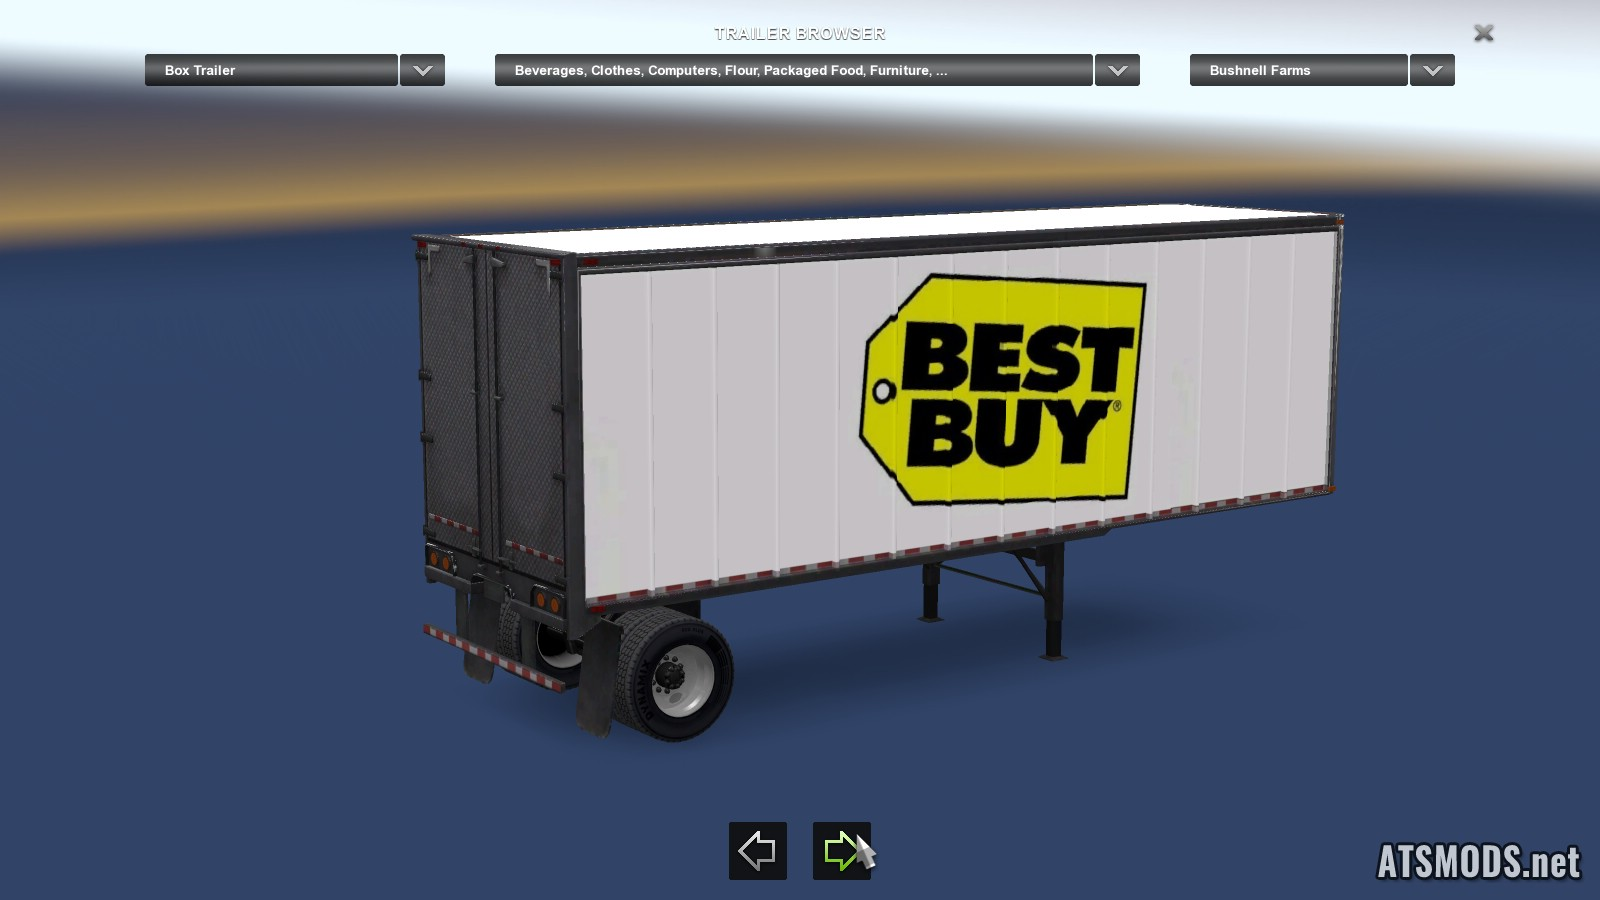 Box Trailers by jack2015